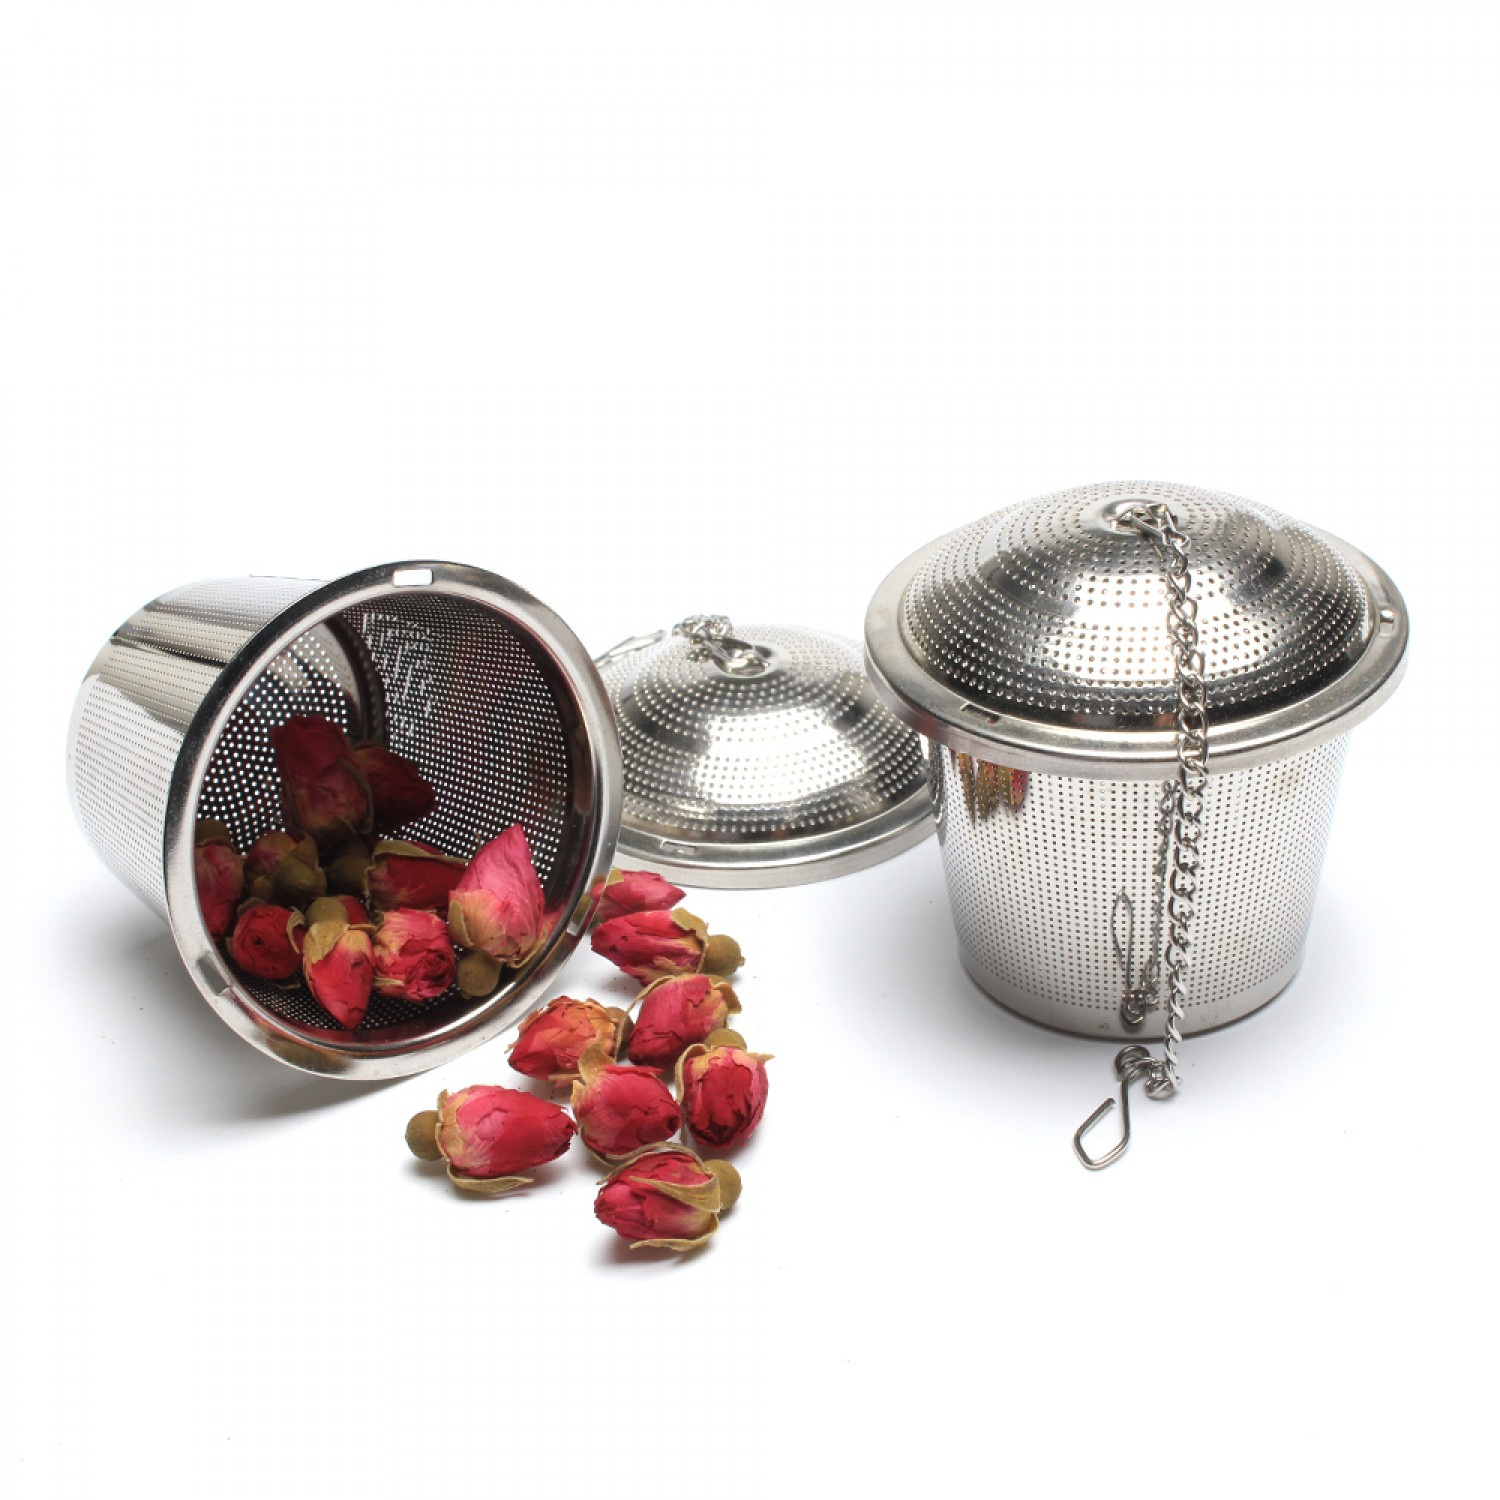 6.5 Stainless Steel Etch Hole Tea Strainer With Chain